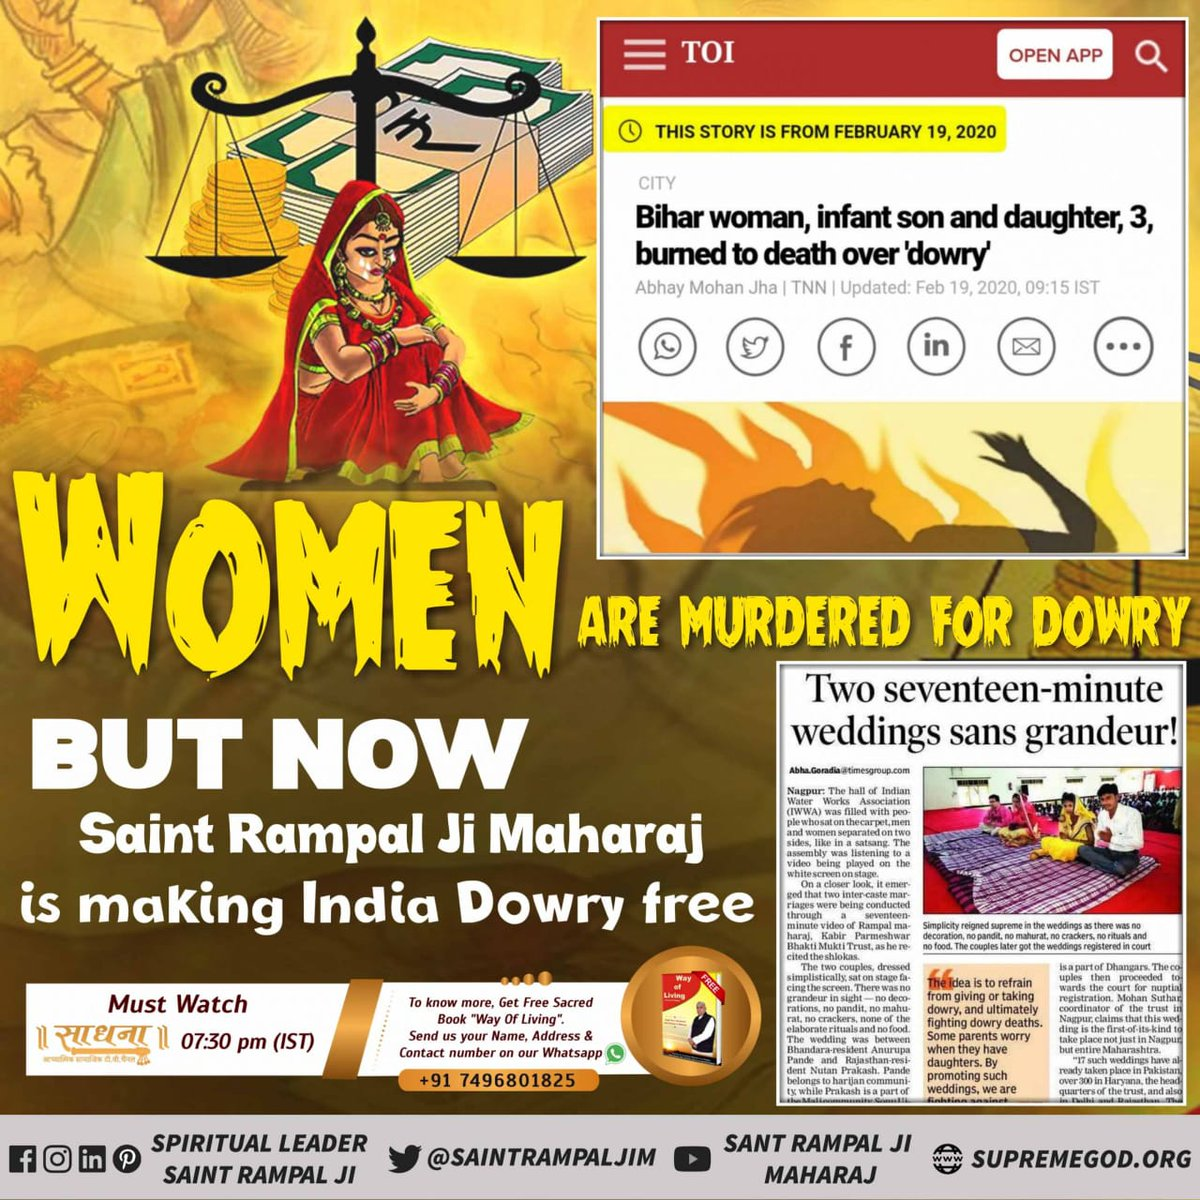 #GodMorningFriday #tuesdaymotivations #TuesdayFeeling Women are murdered for dowry But now👇👇🙏🙏